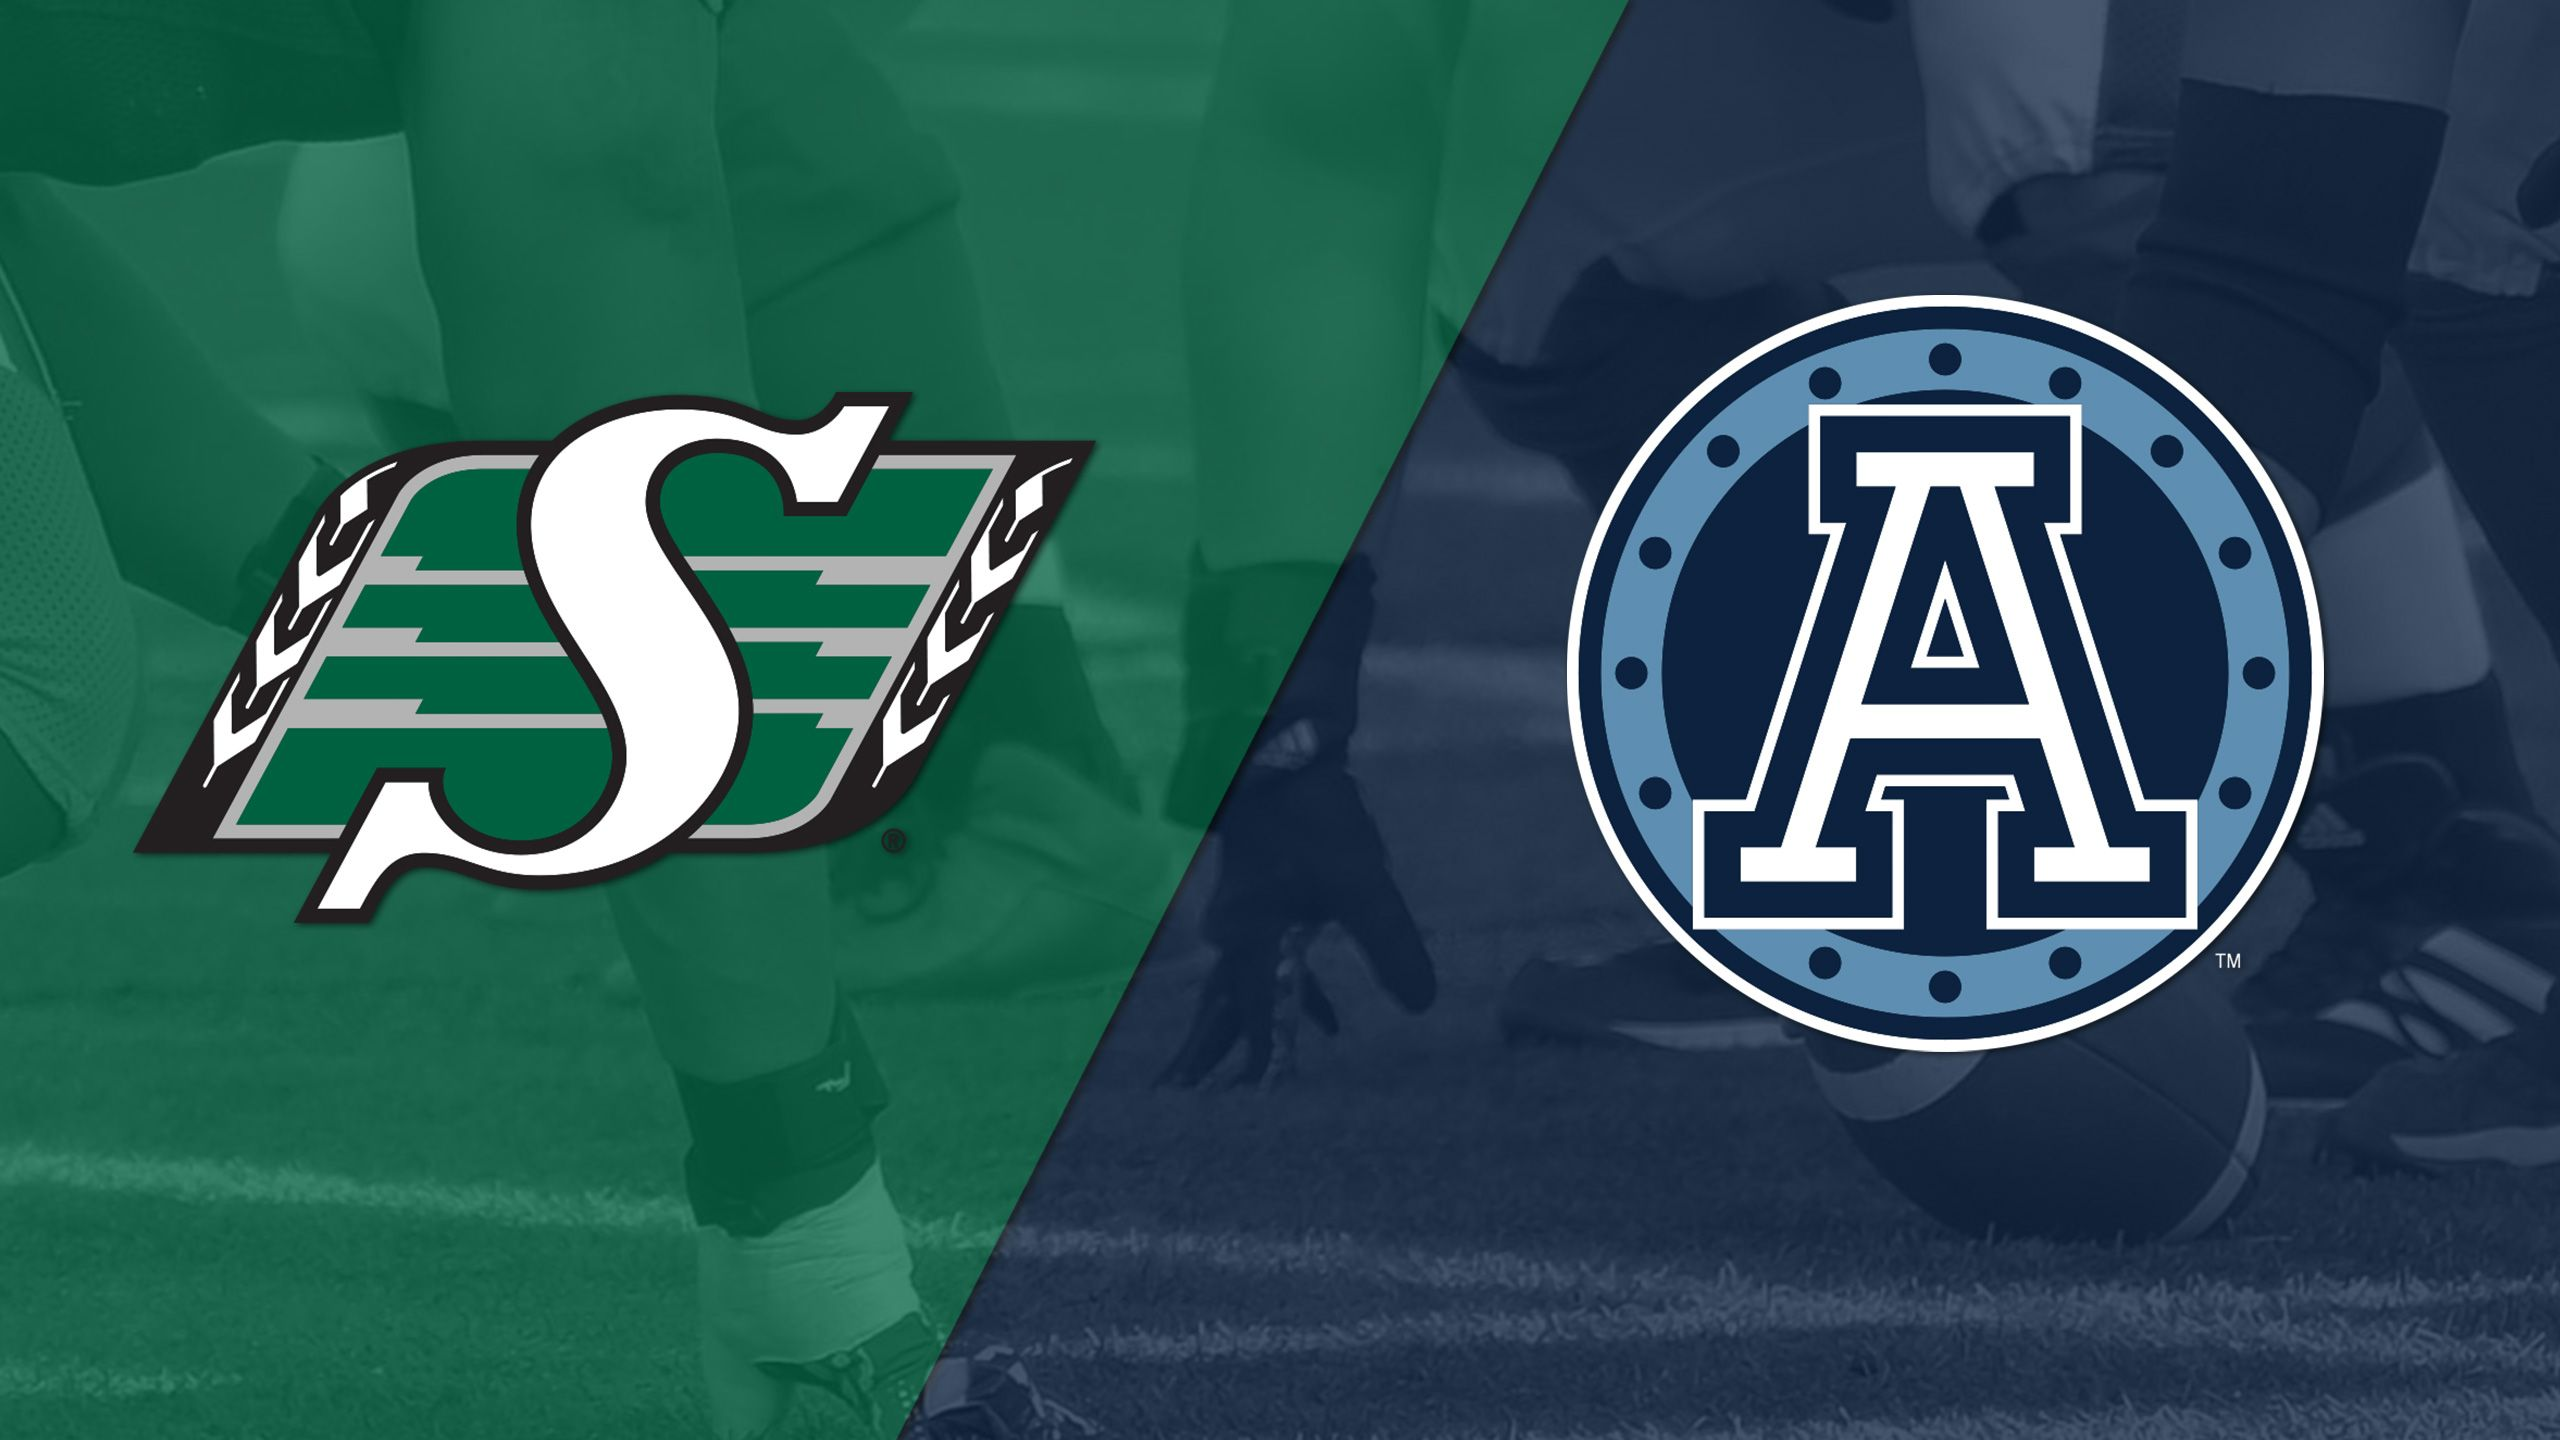 Saskatchewan Roughriders vs. Toronto Argonauts (Eastern Finals)